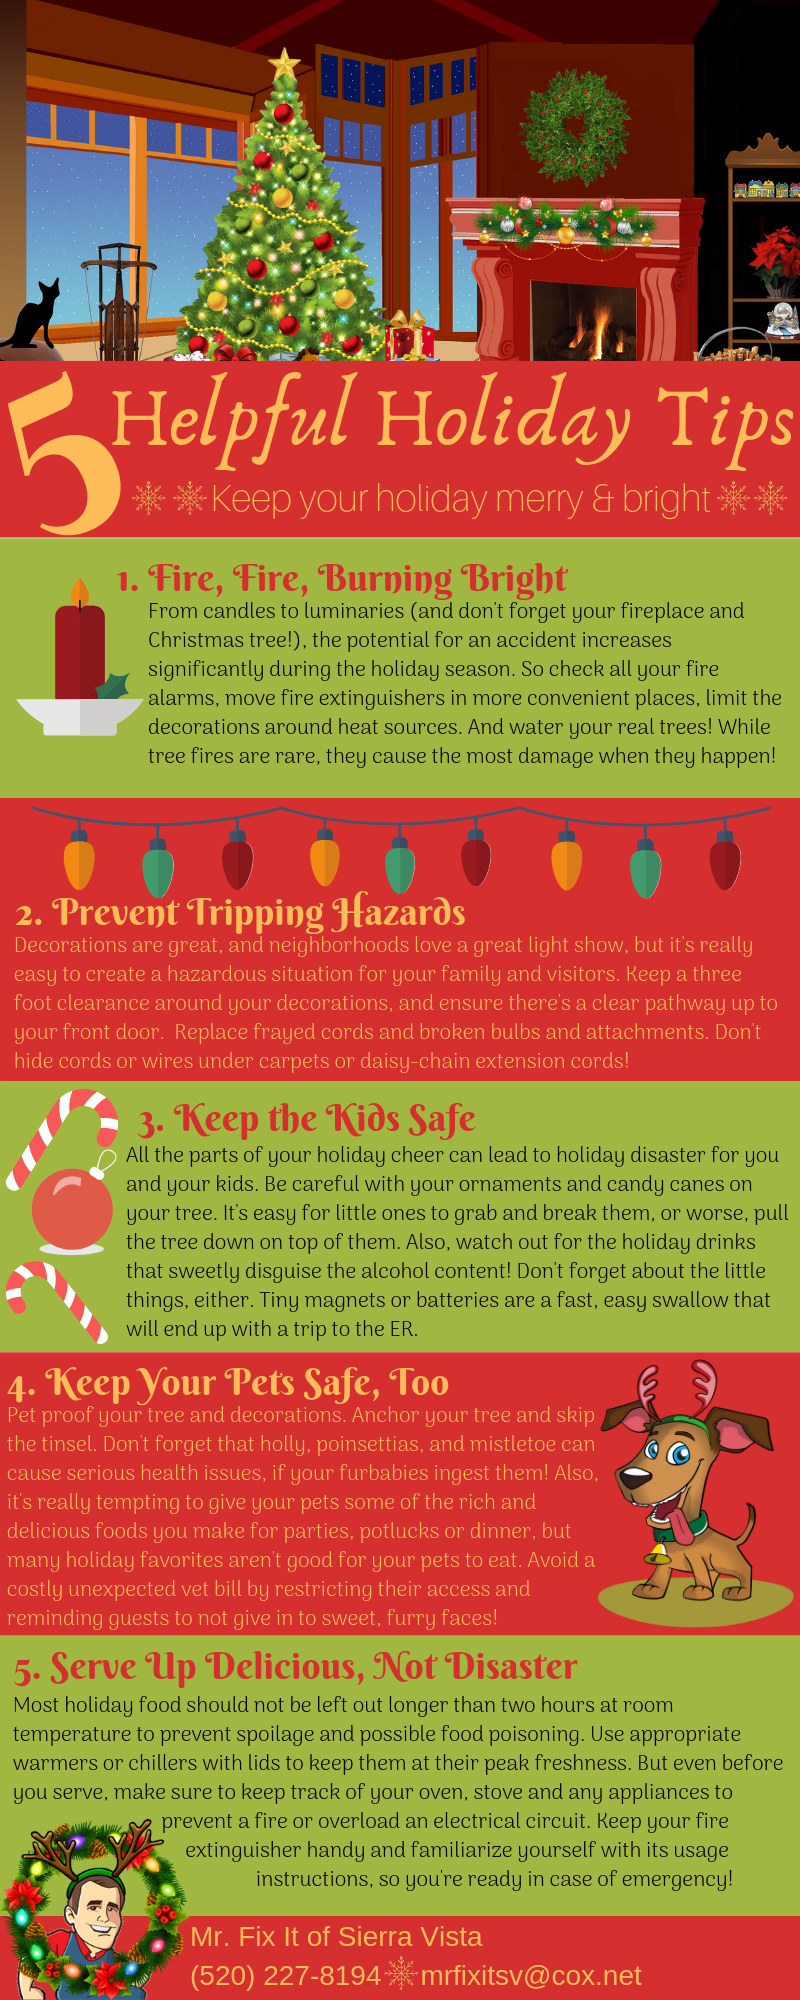 5 Helpful Holiday Tips Infographic